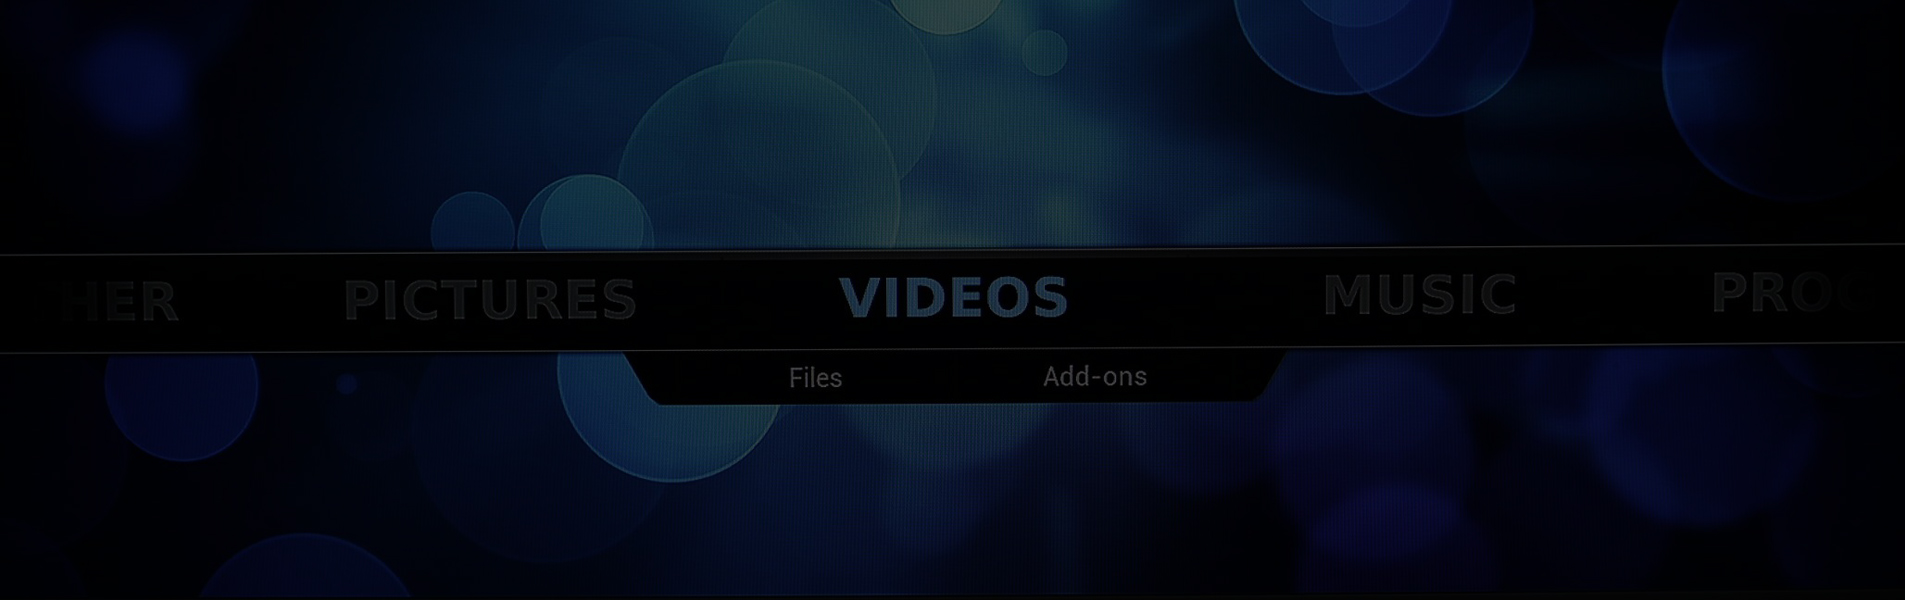 How to install addons on Kodi media center